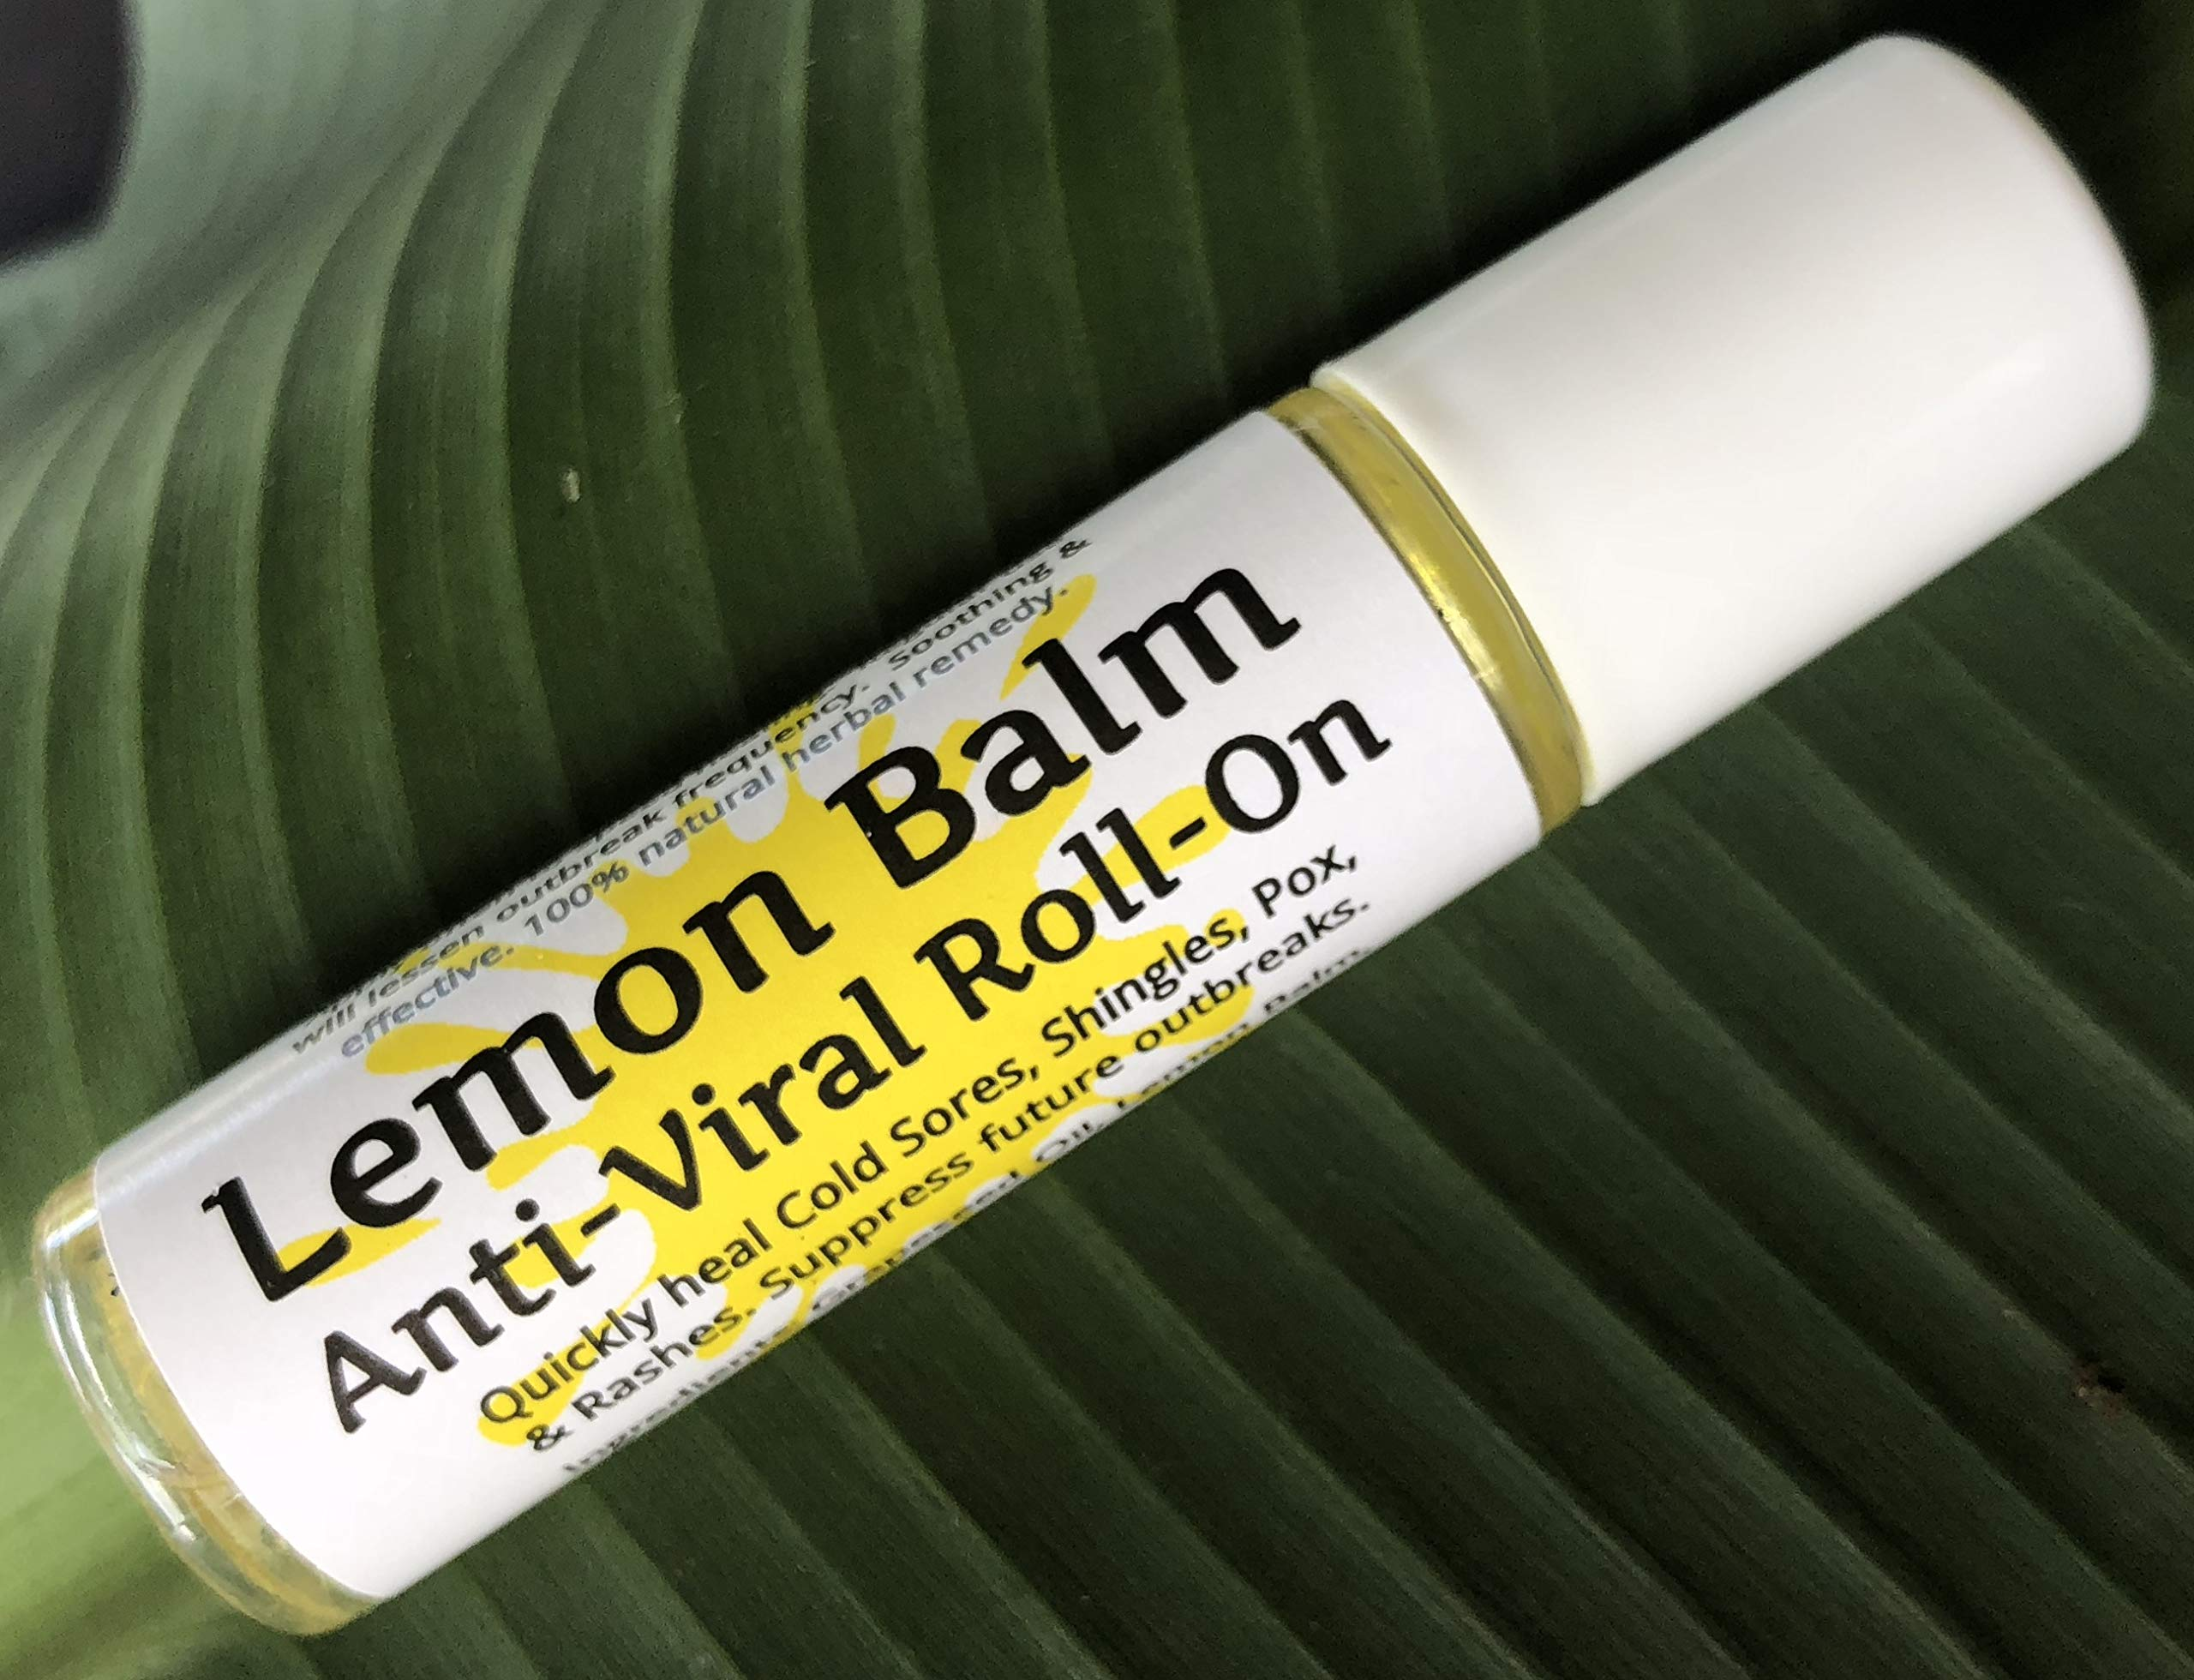 Urban ReLeaf Lemon Balm Cold Sore & Shingles ROLL-ON! Quickly Soothe Blisters, Chicken Pox, Bumps, Rashes, Molluscum, Bug Bites. Suppress Future outbreaks. 100% Natural.''Goodbye, Itchy red Bumps!'' by Urban ReLeaf